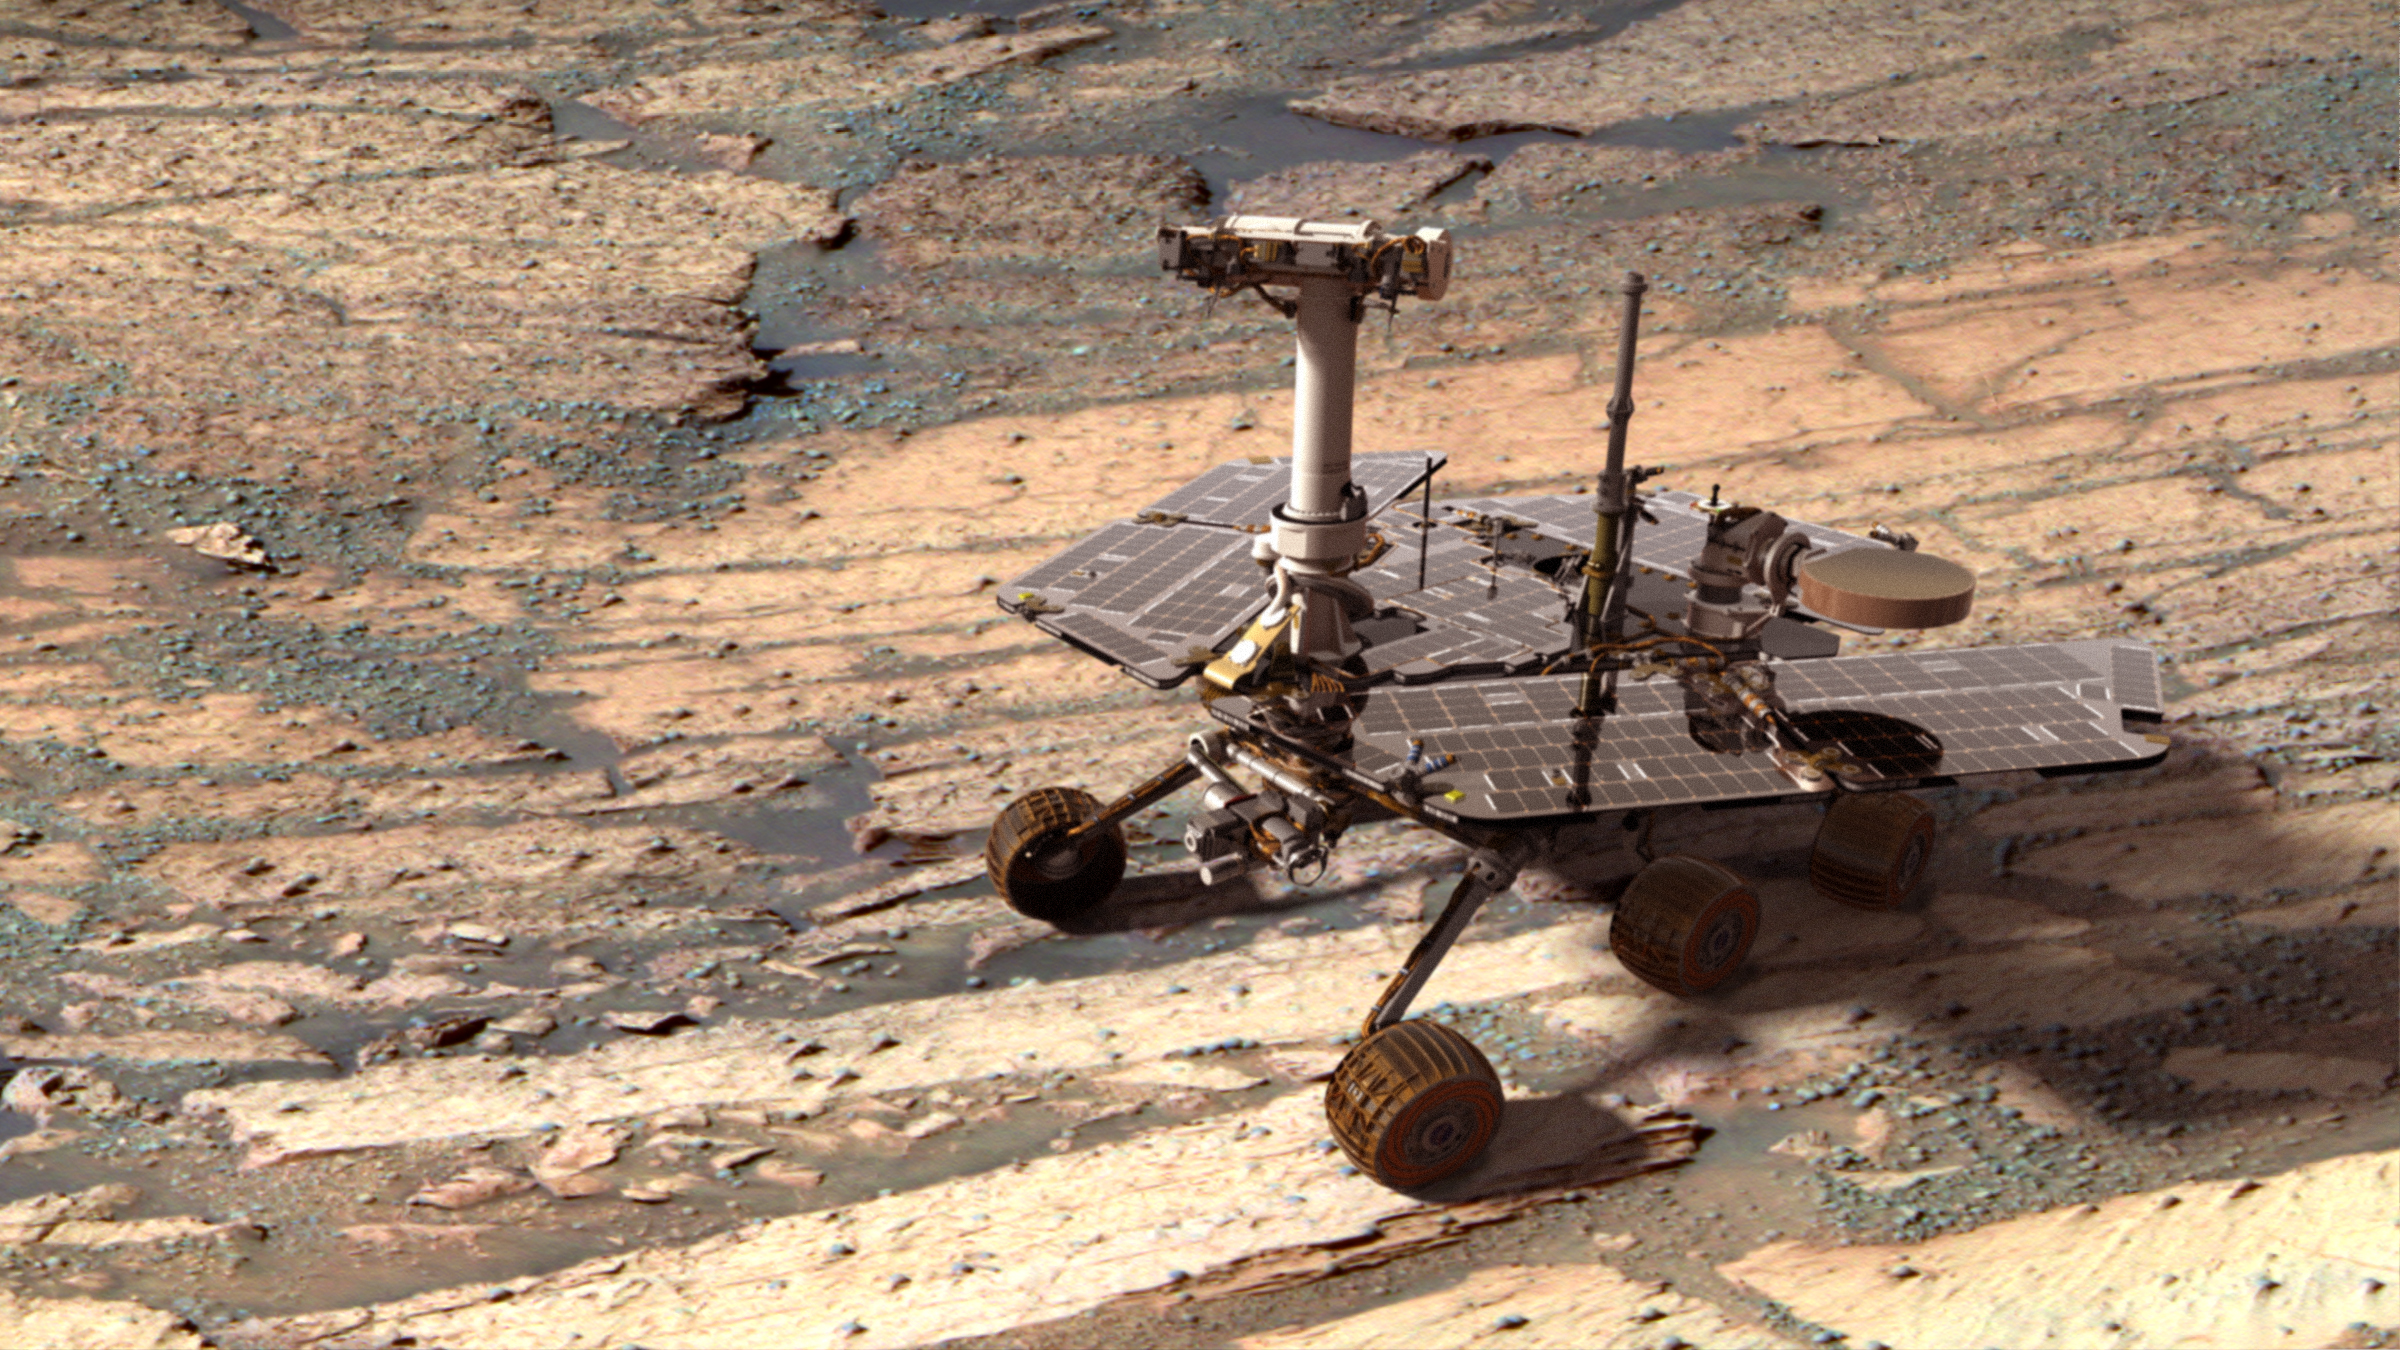 mars rover opportunity - photo #2